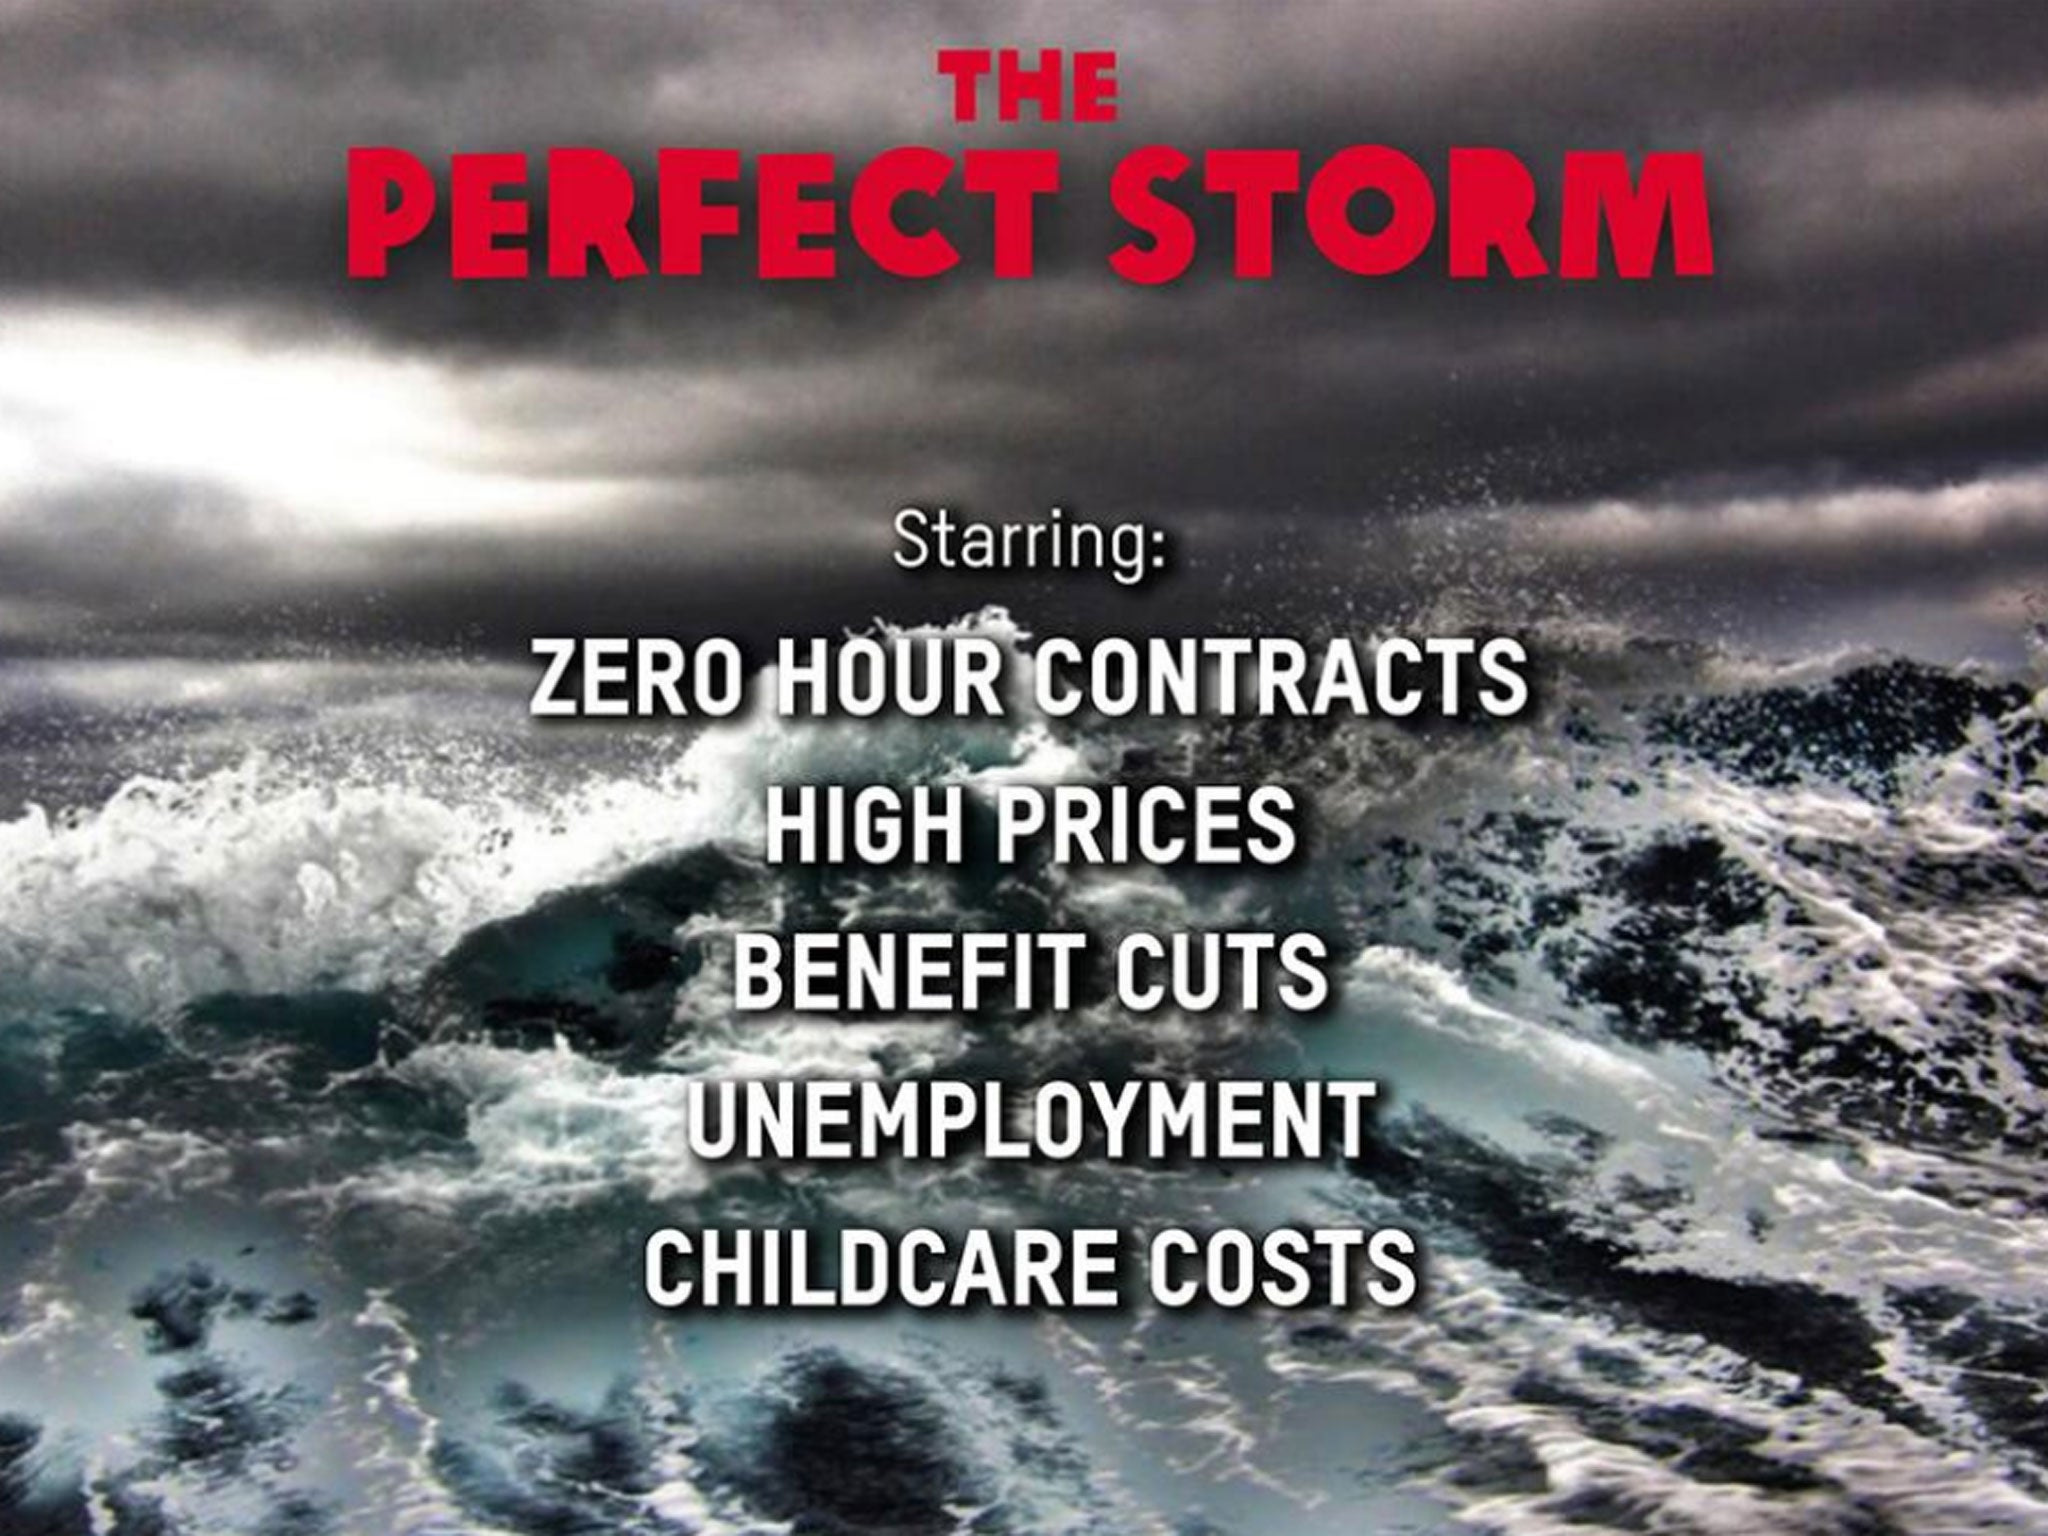 Oxfam 'perfect storm' poster attacked as 'shameful' by Conservative ...